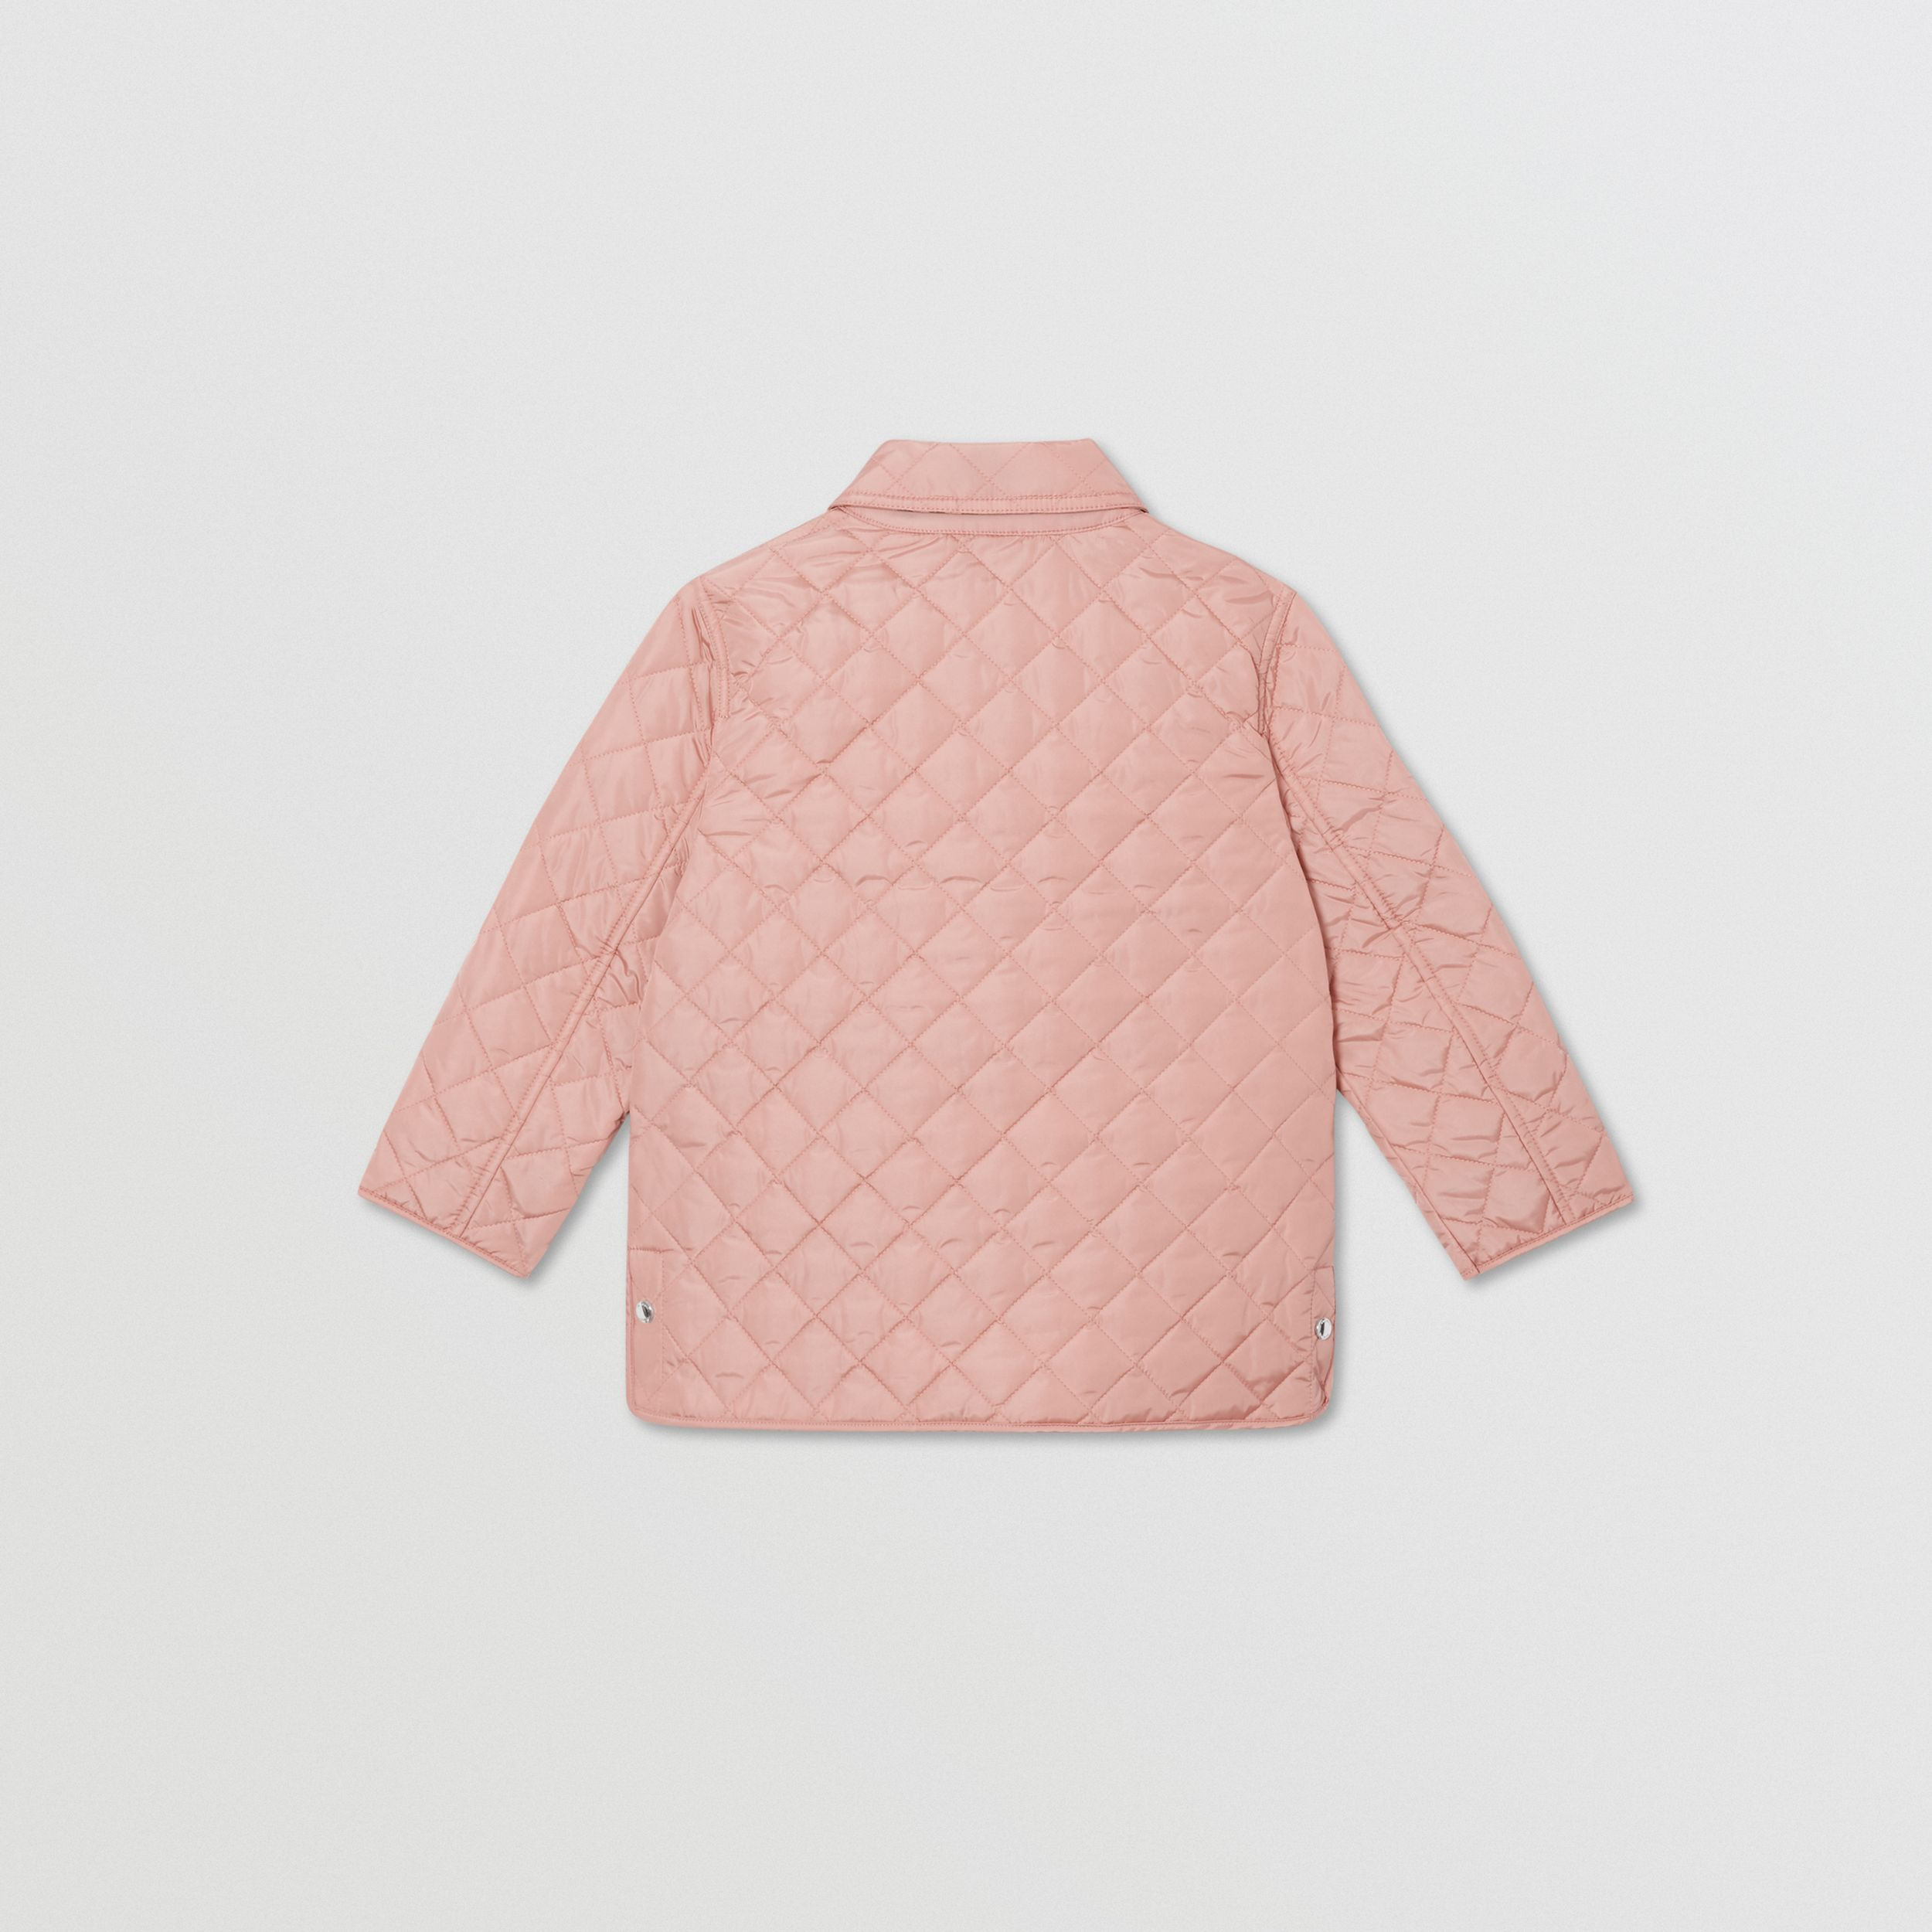 Lightweight Diamond Quilted Jacket in Dusty Pink | Burberry - 4